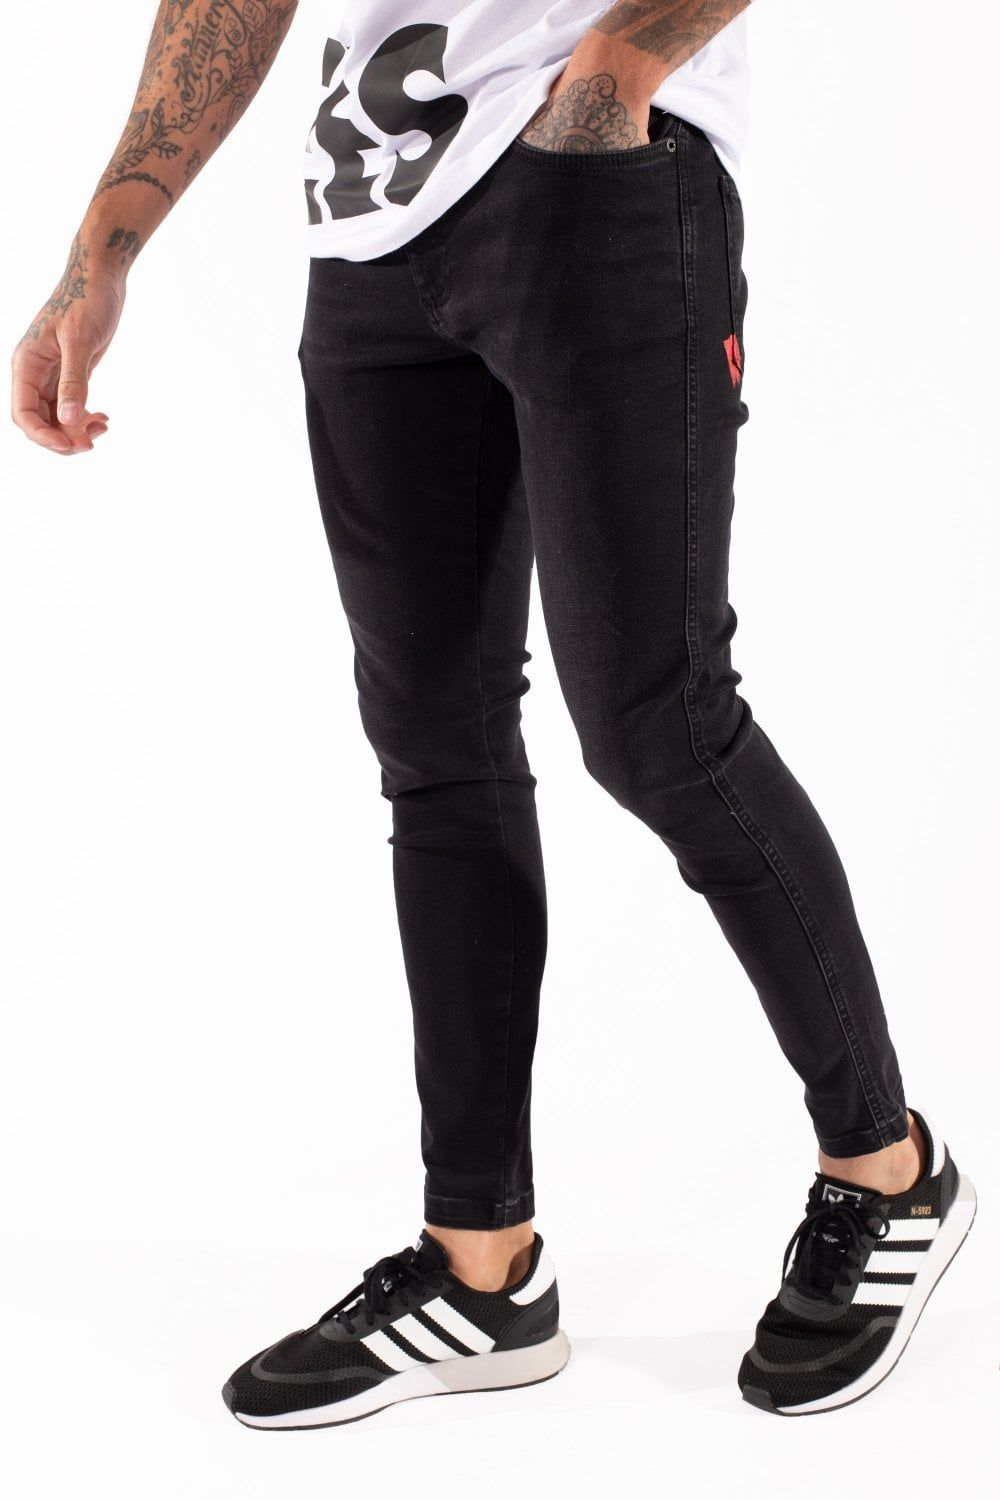 Stretch Jeans Skinny Fit Washed Black Super Stretch Jeans Skinny Fit Stretch Jeans